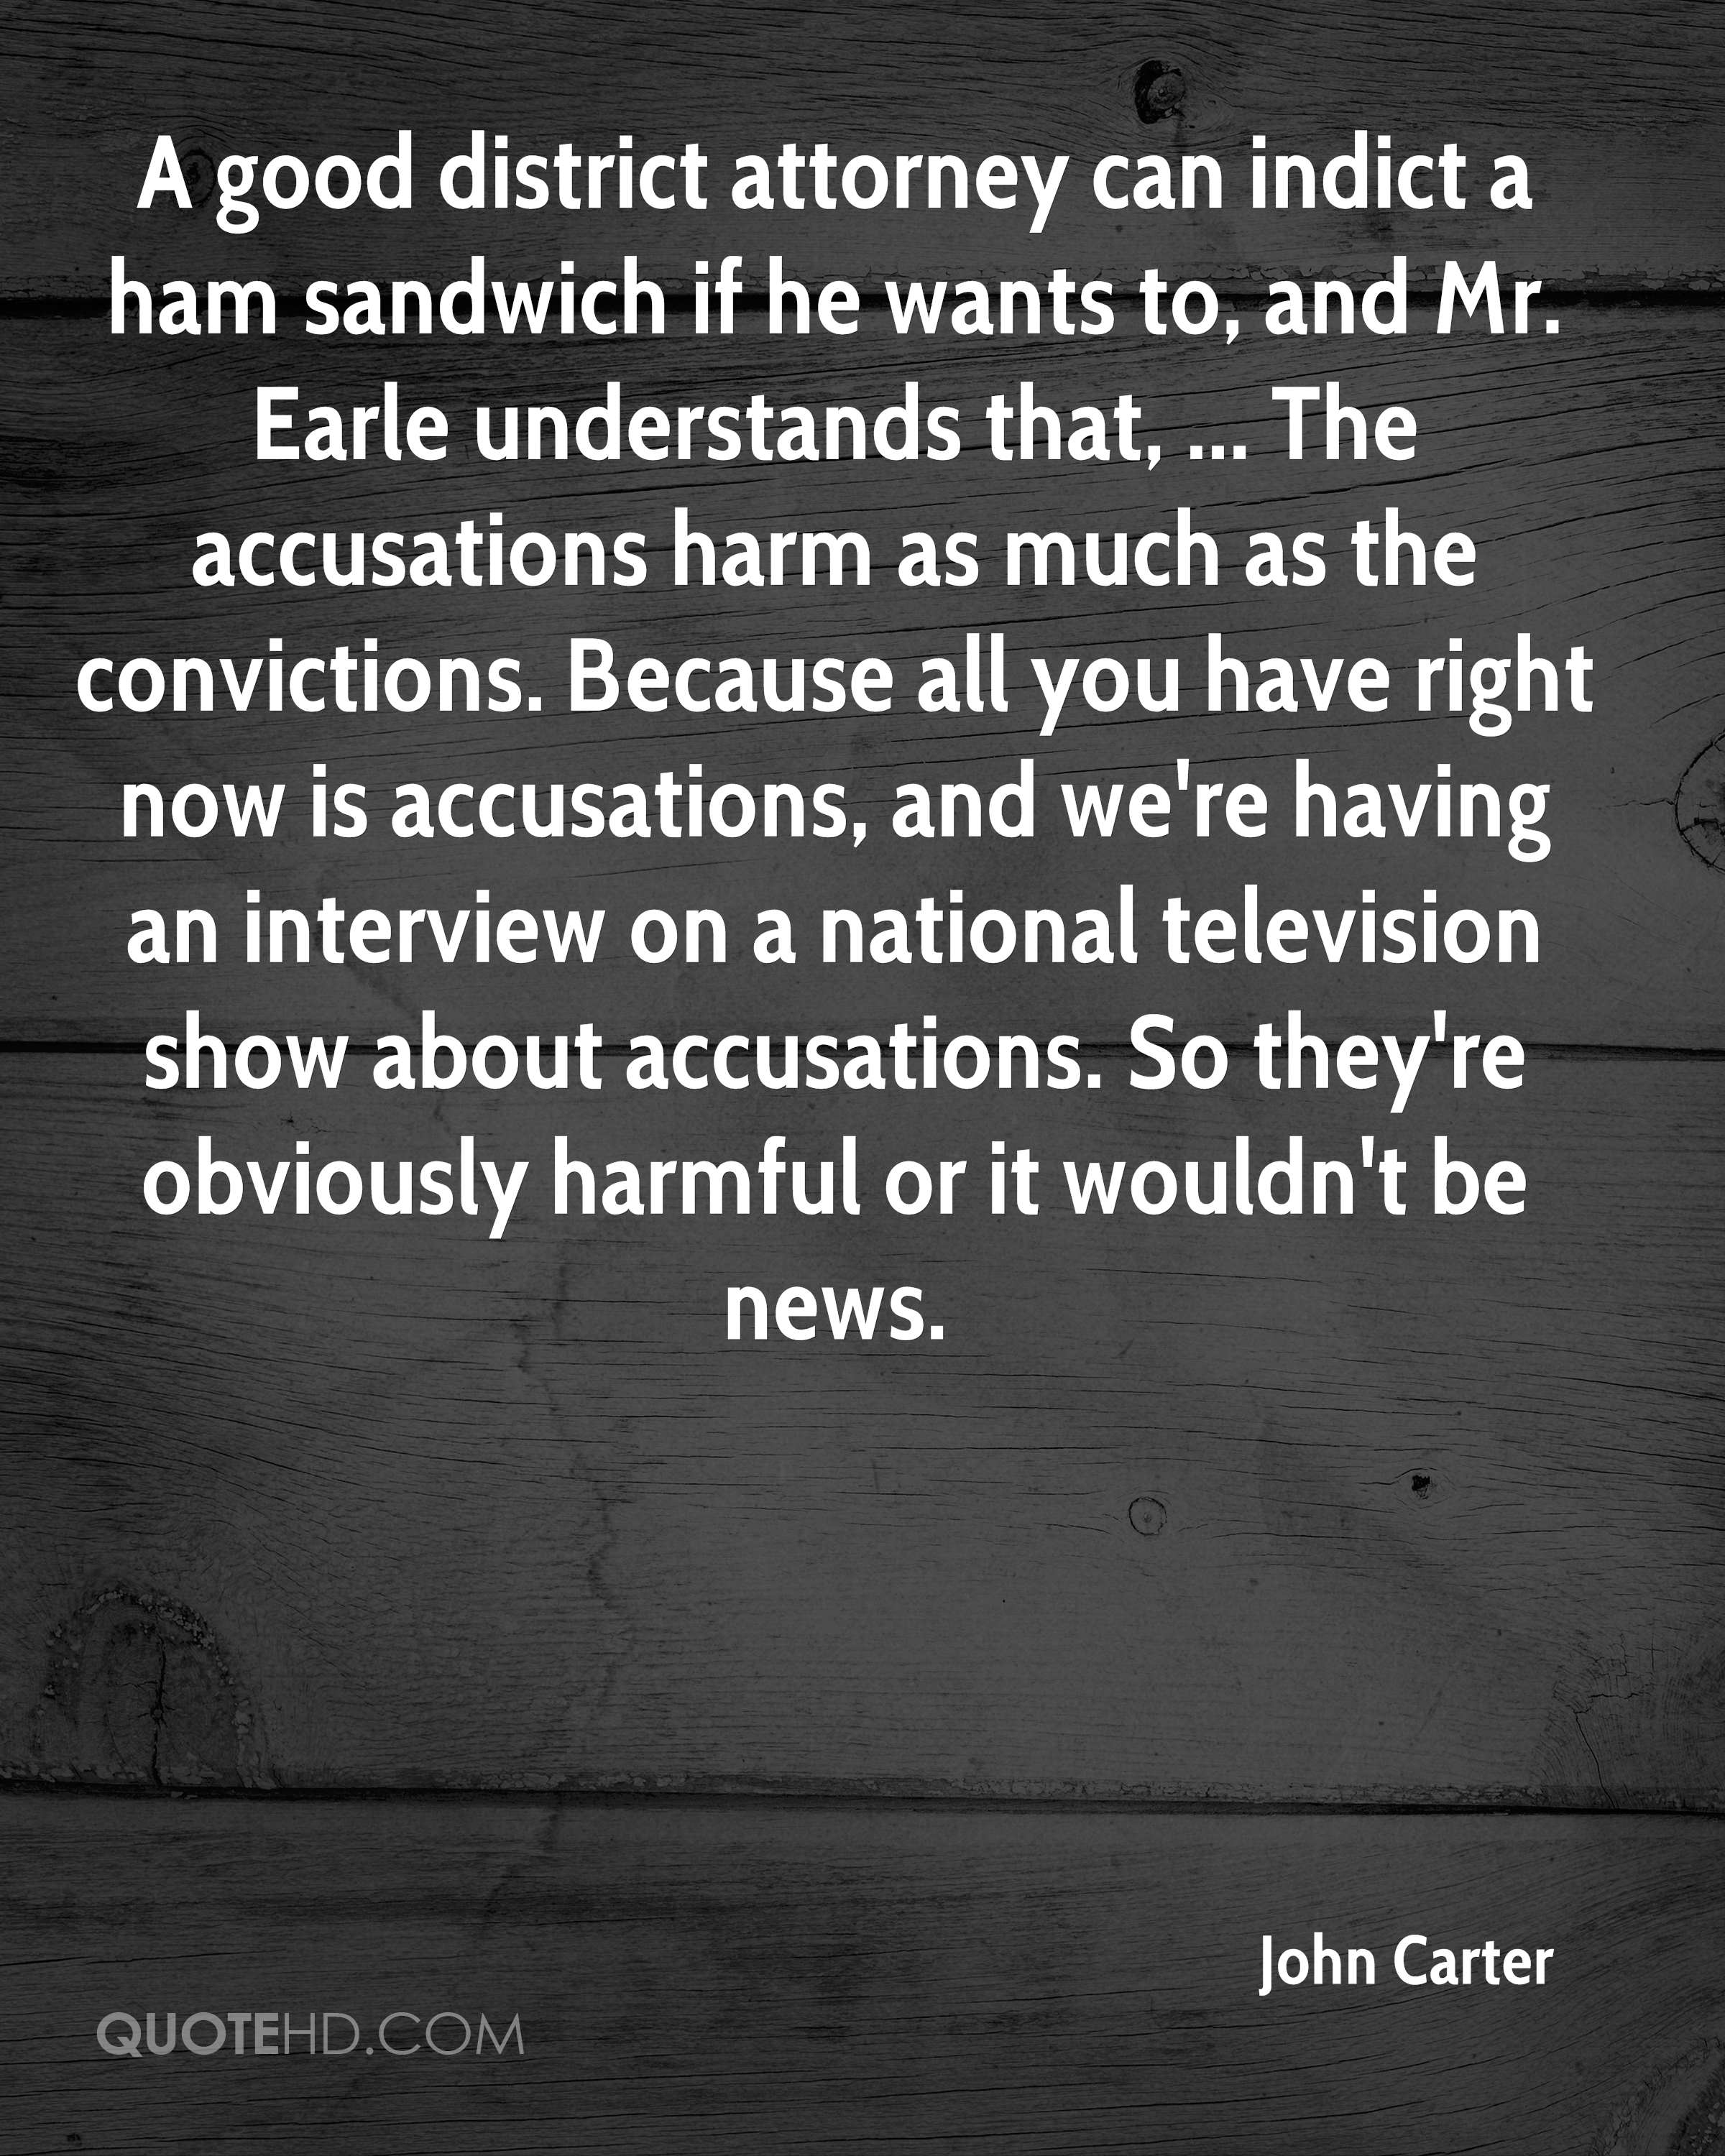 A good district attorney can indict a ham sandwich if he wants to, and Mr. Earle understands that, ... The accusations harm as much as the convictions. Because all you have right now is accusations, and we're having an interview on a national television show about accusations. So they're obviously harmful or it wouldn't be news.